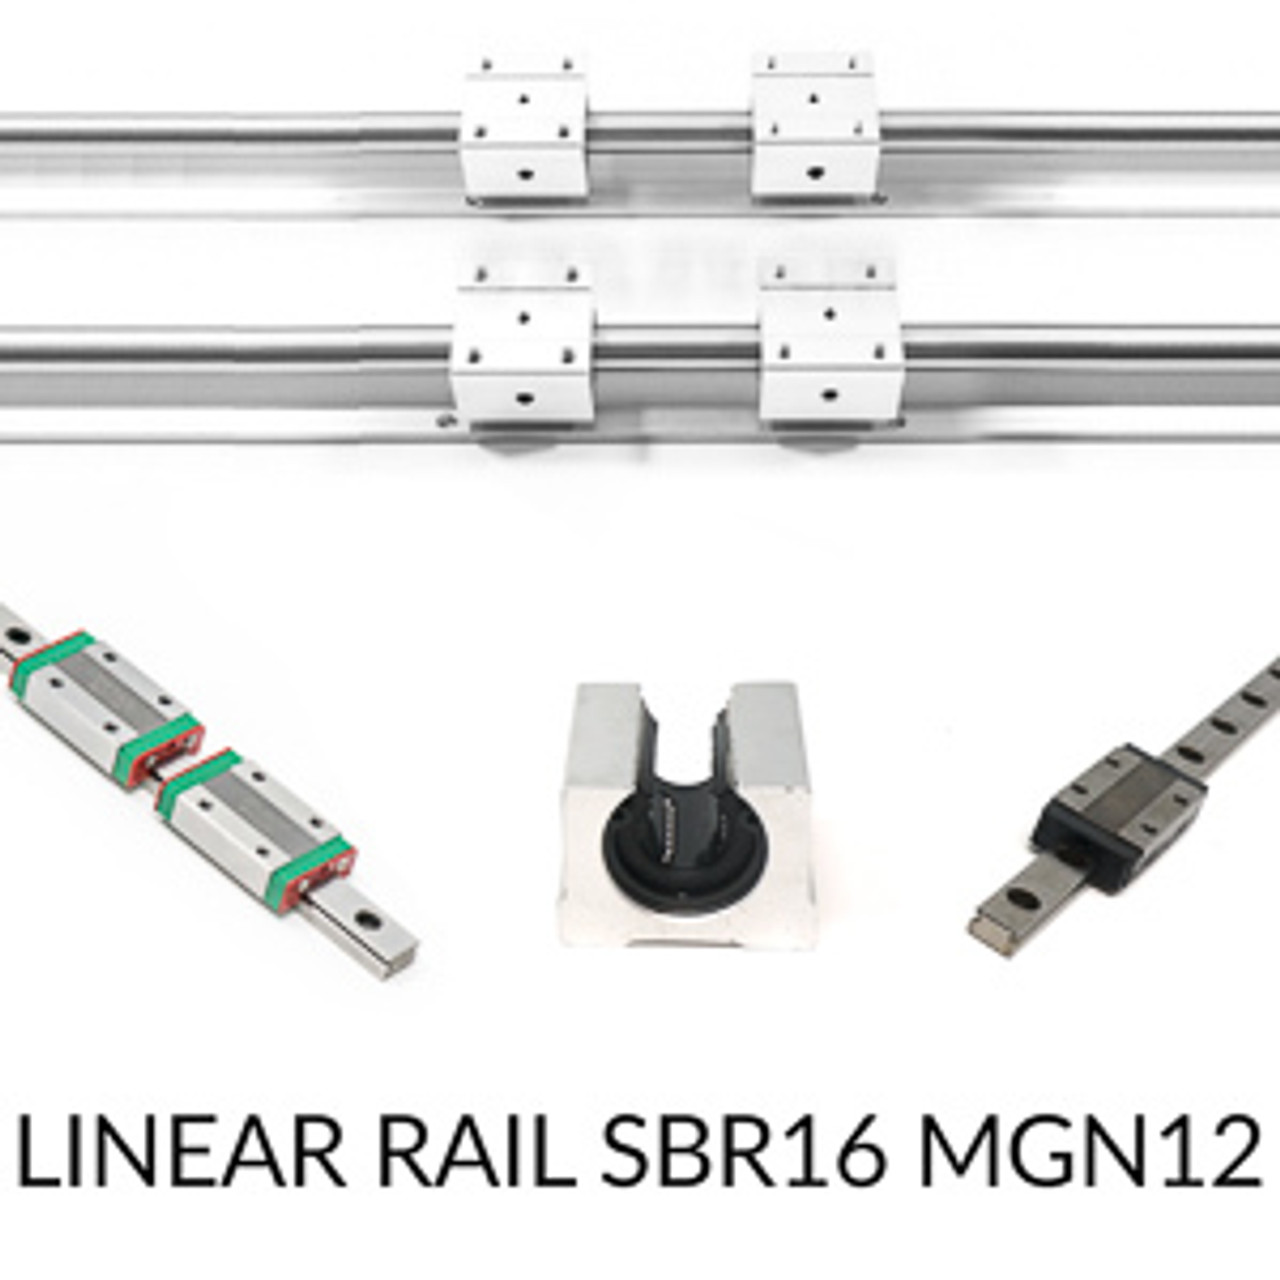 Linear rail SBR16 MGN12